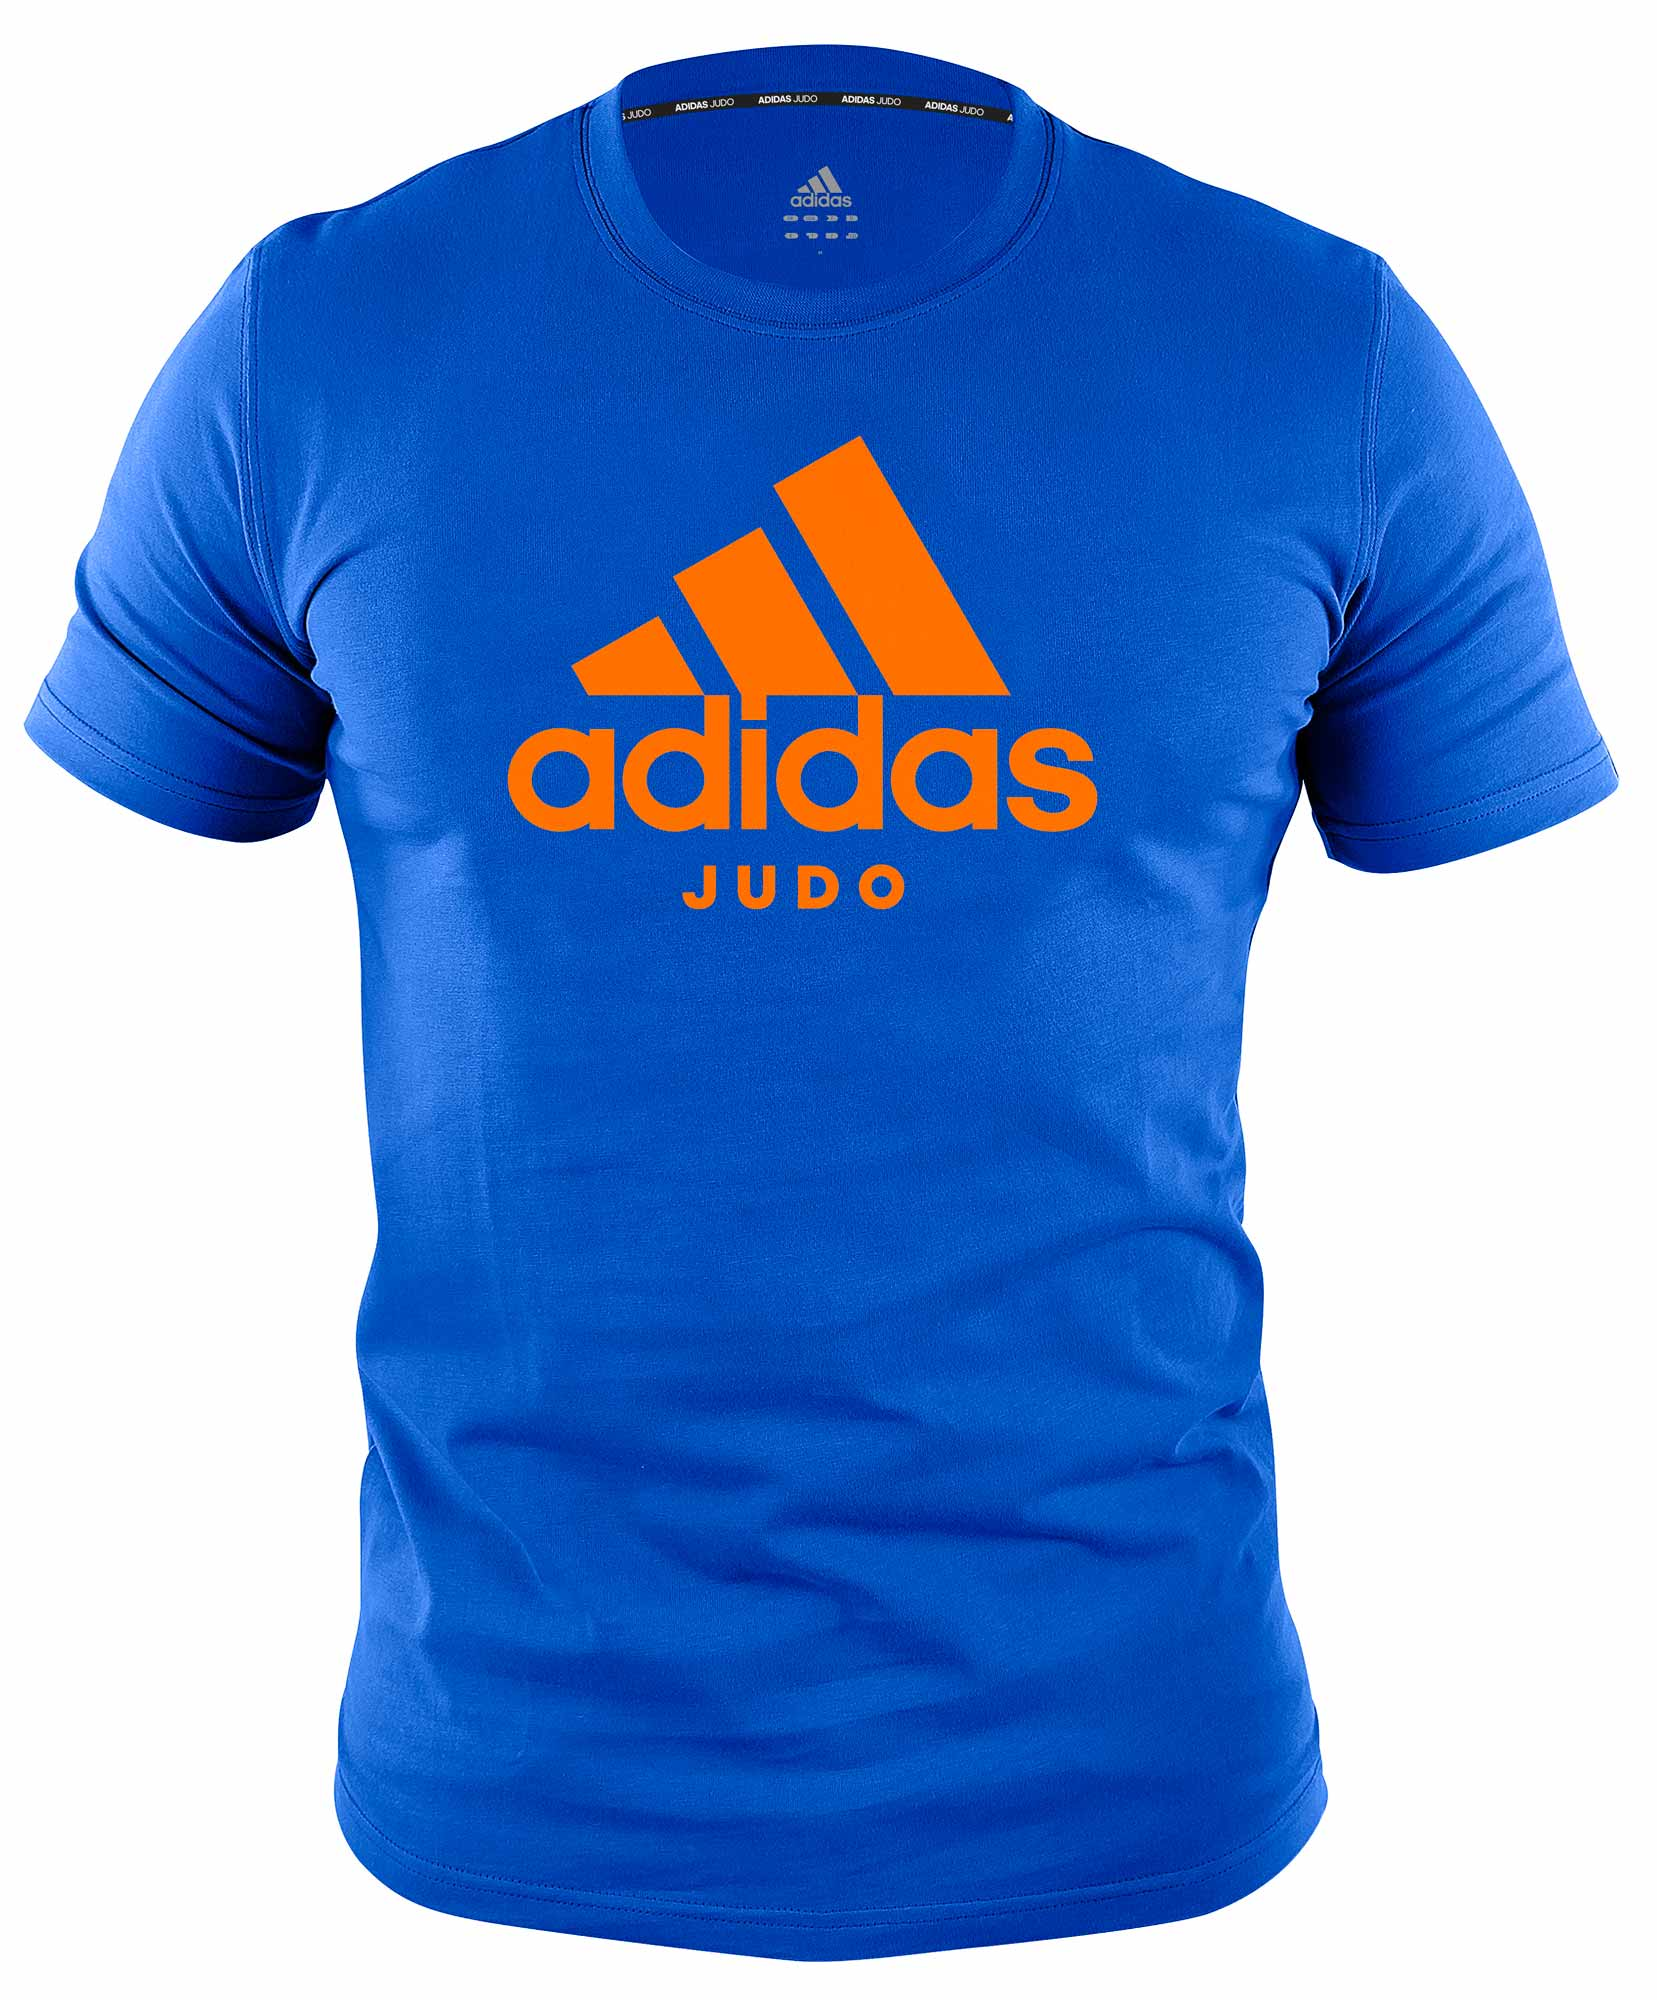 adidas Community Line T Shirt Judo Performance ADICTJ blueorange